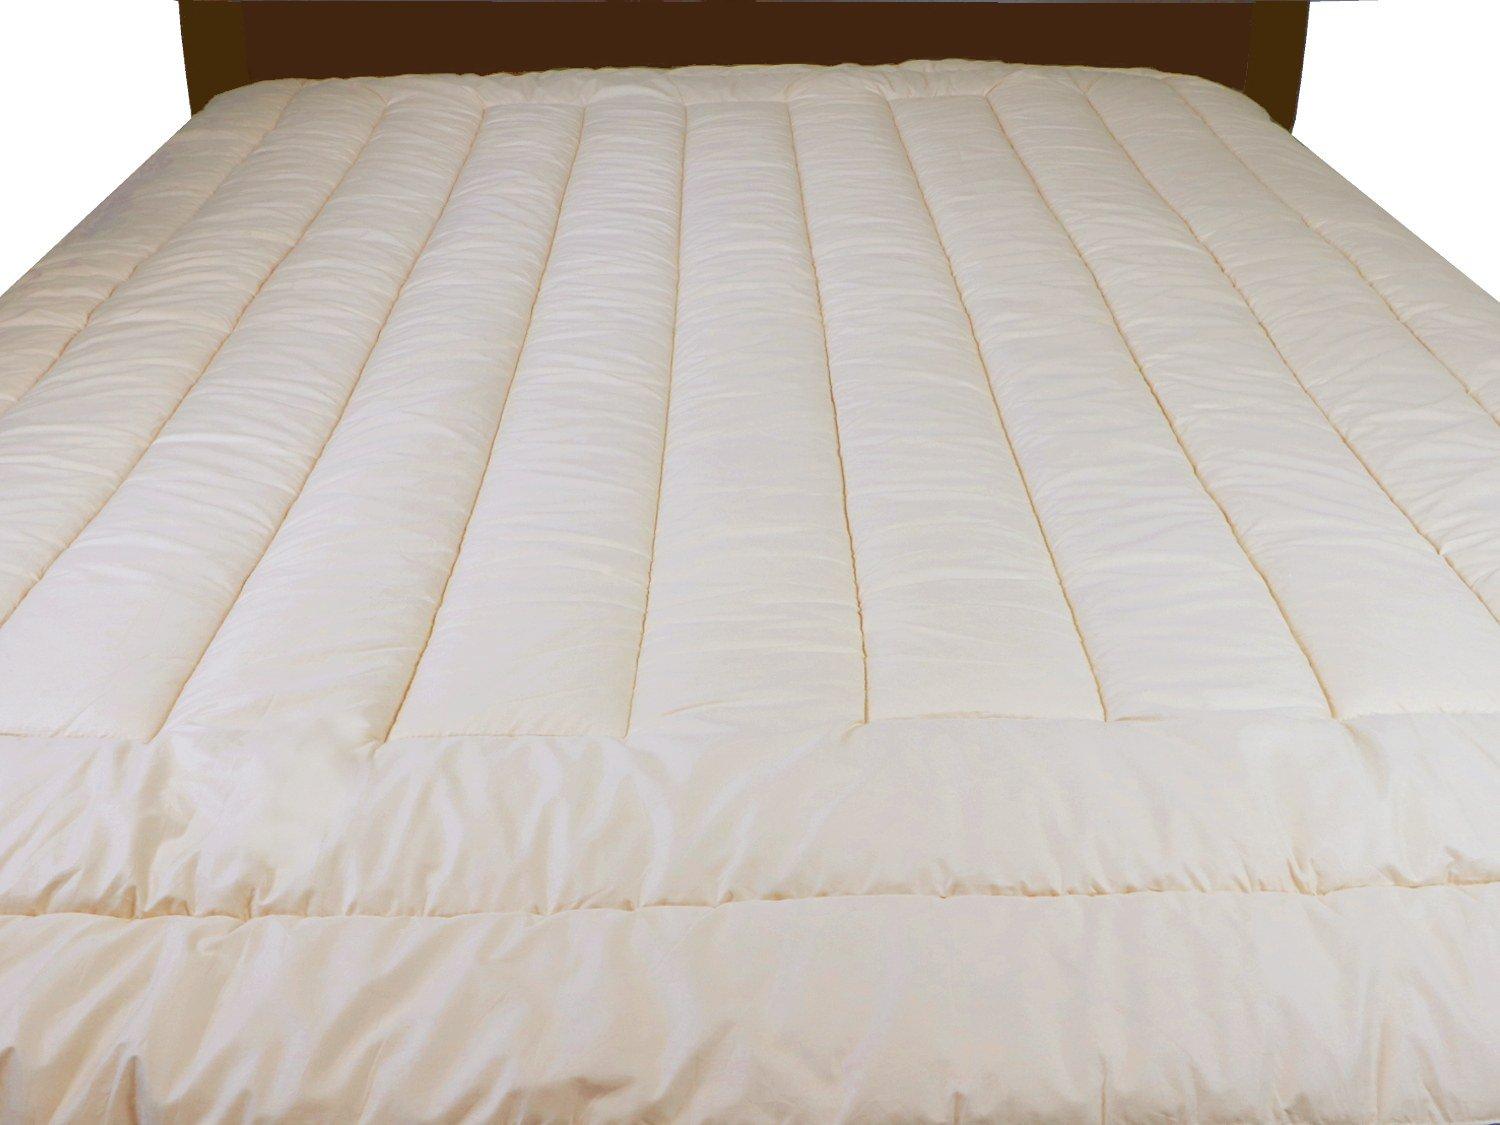 Wool Mattress Pad Reviews Wool Mattress Topper Wool Mattress Pad With Organic Cotton Cover